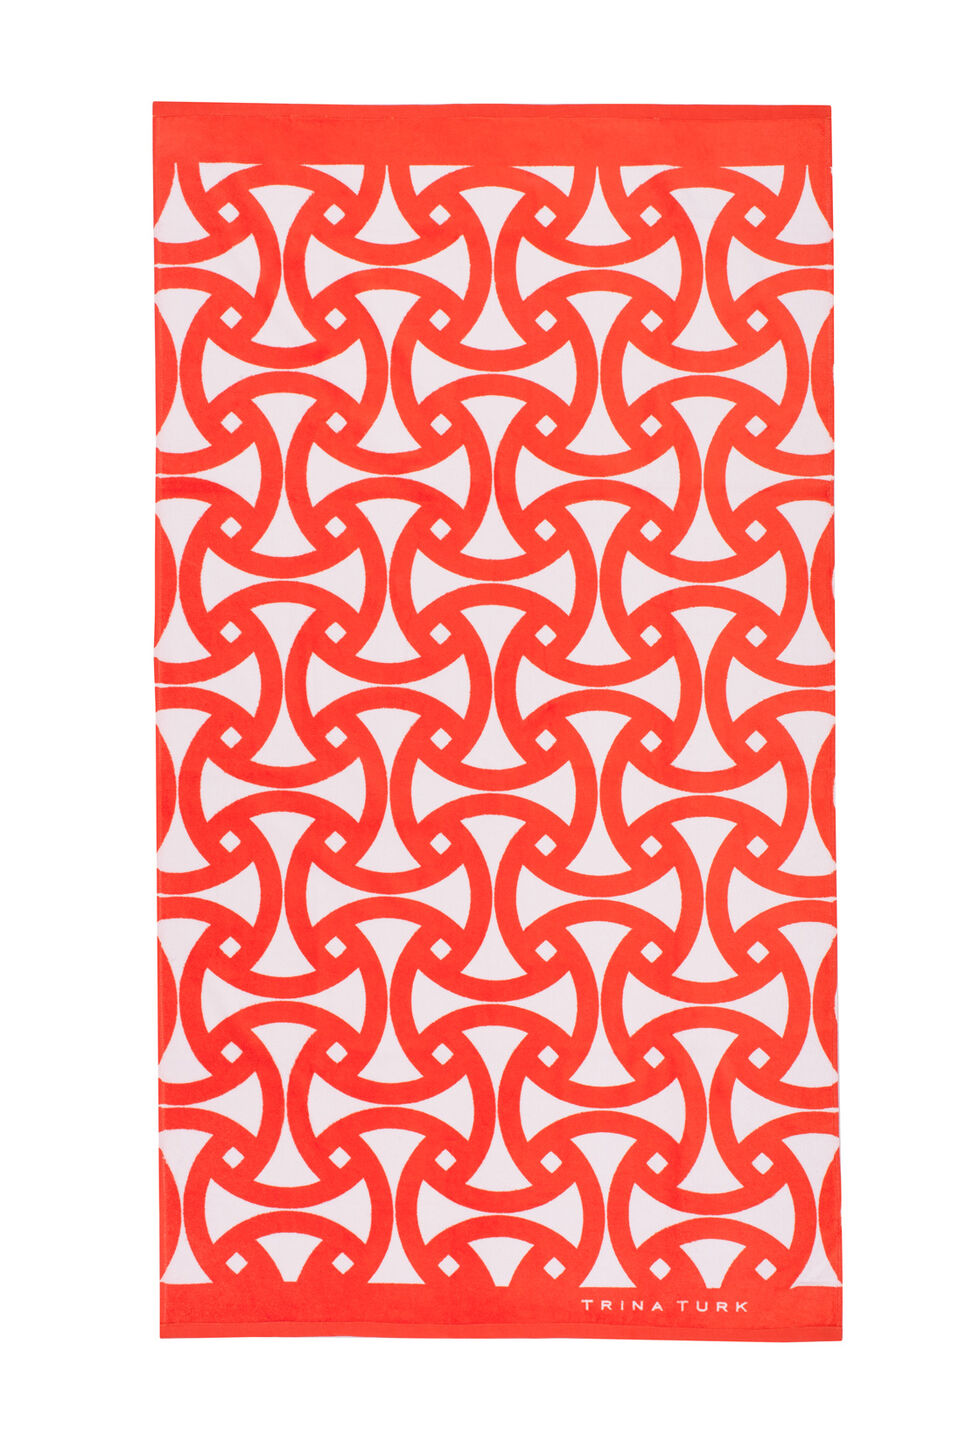 Trina Turk Santorini Beach Towel - Orange - Size O/S